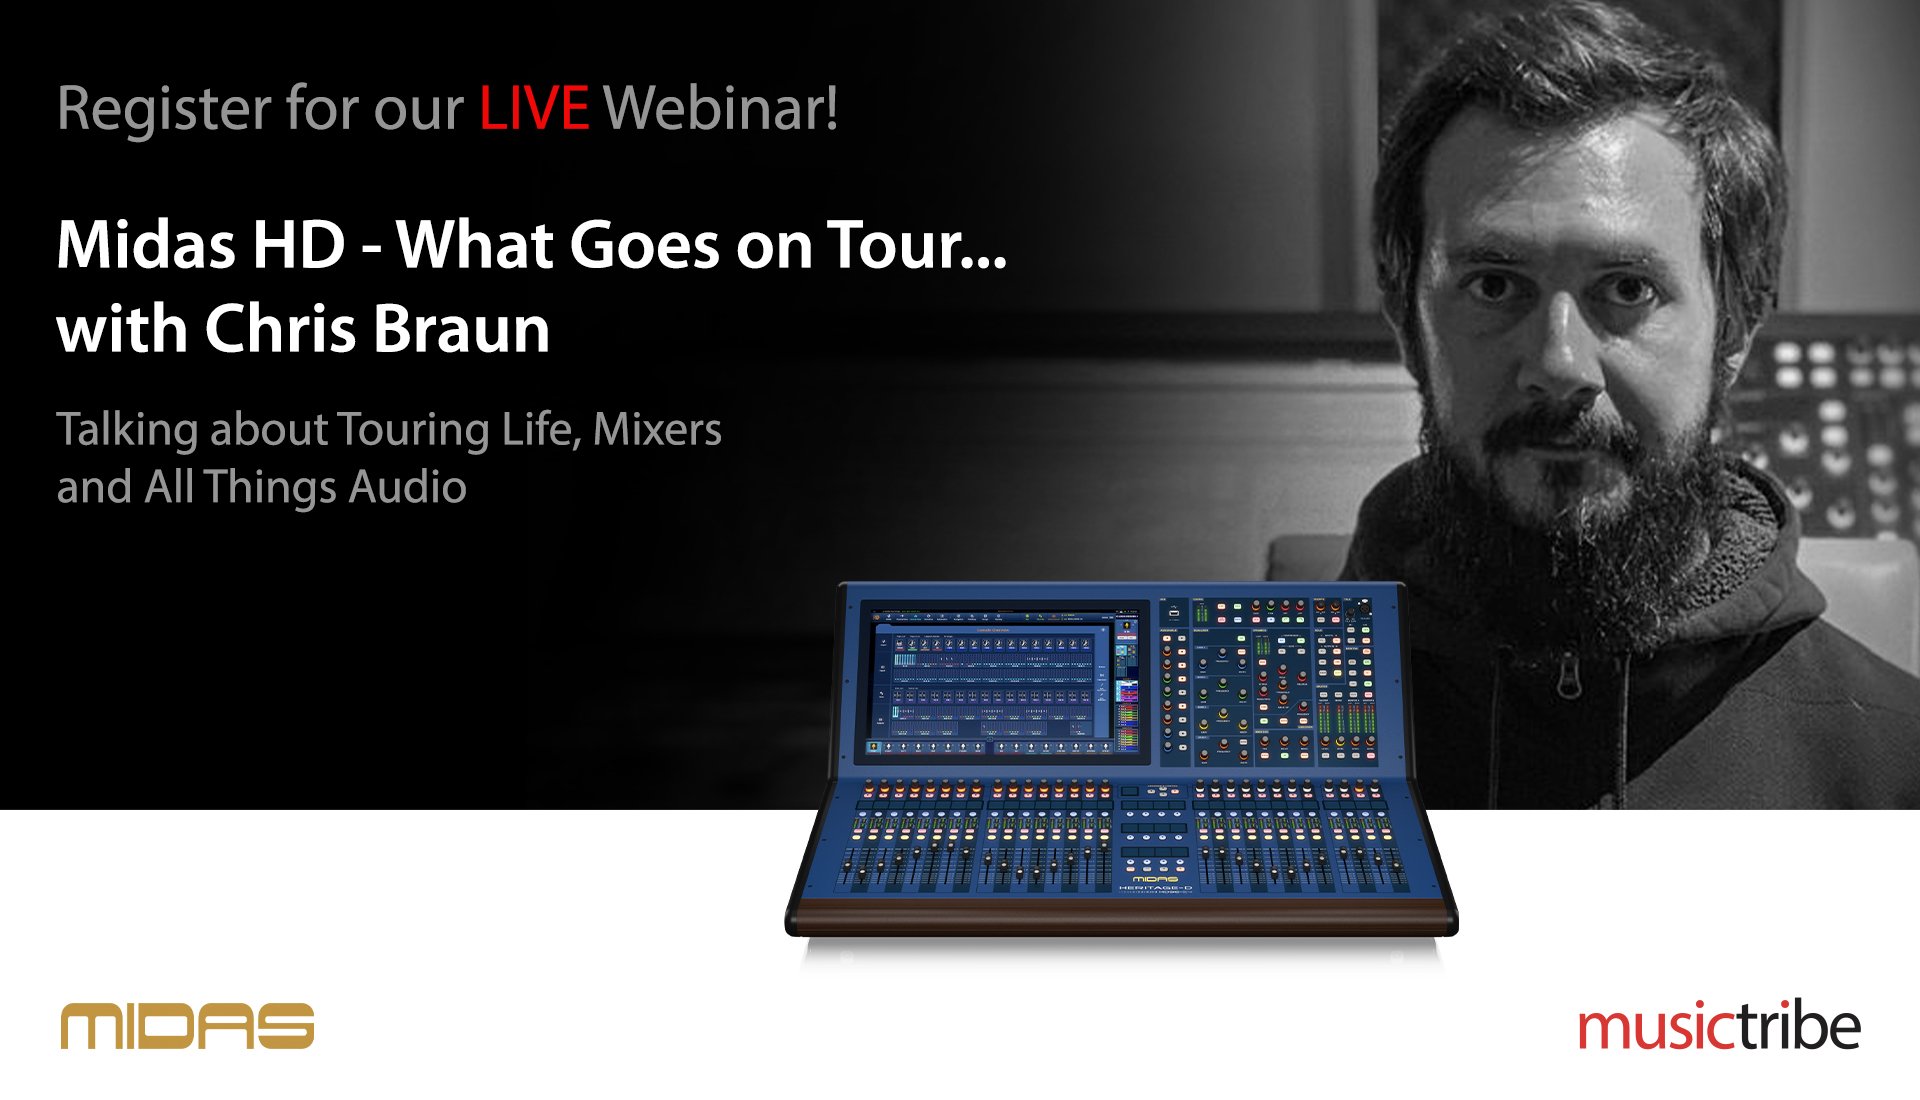 Midas LIVE Webinar: What Goes On Tour... with Chris Braun